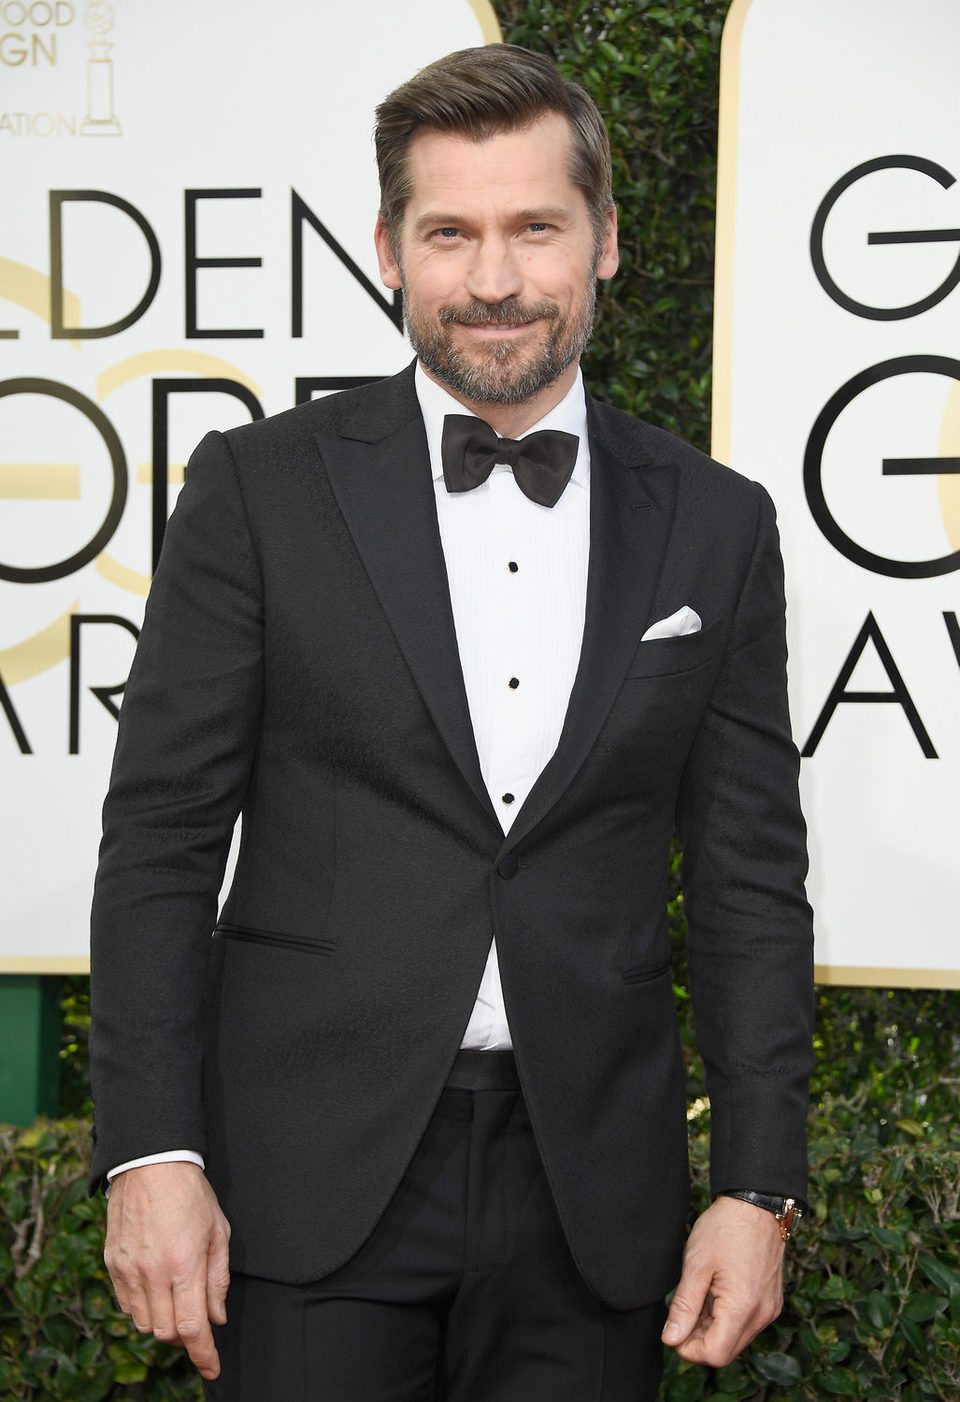 Nikolaj Coster-Waldau at the 2017 Golden Globes red carpet